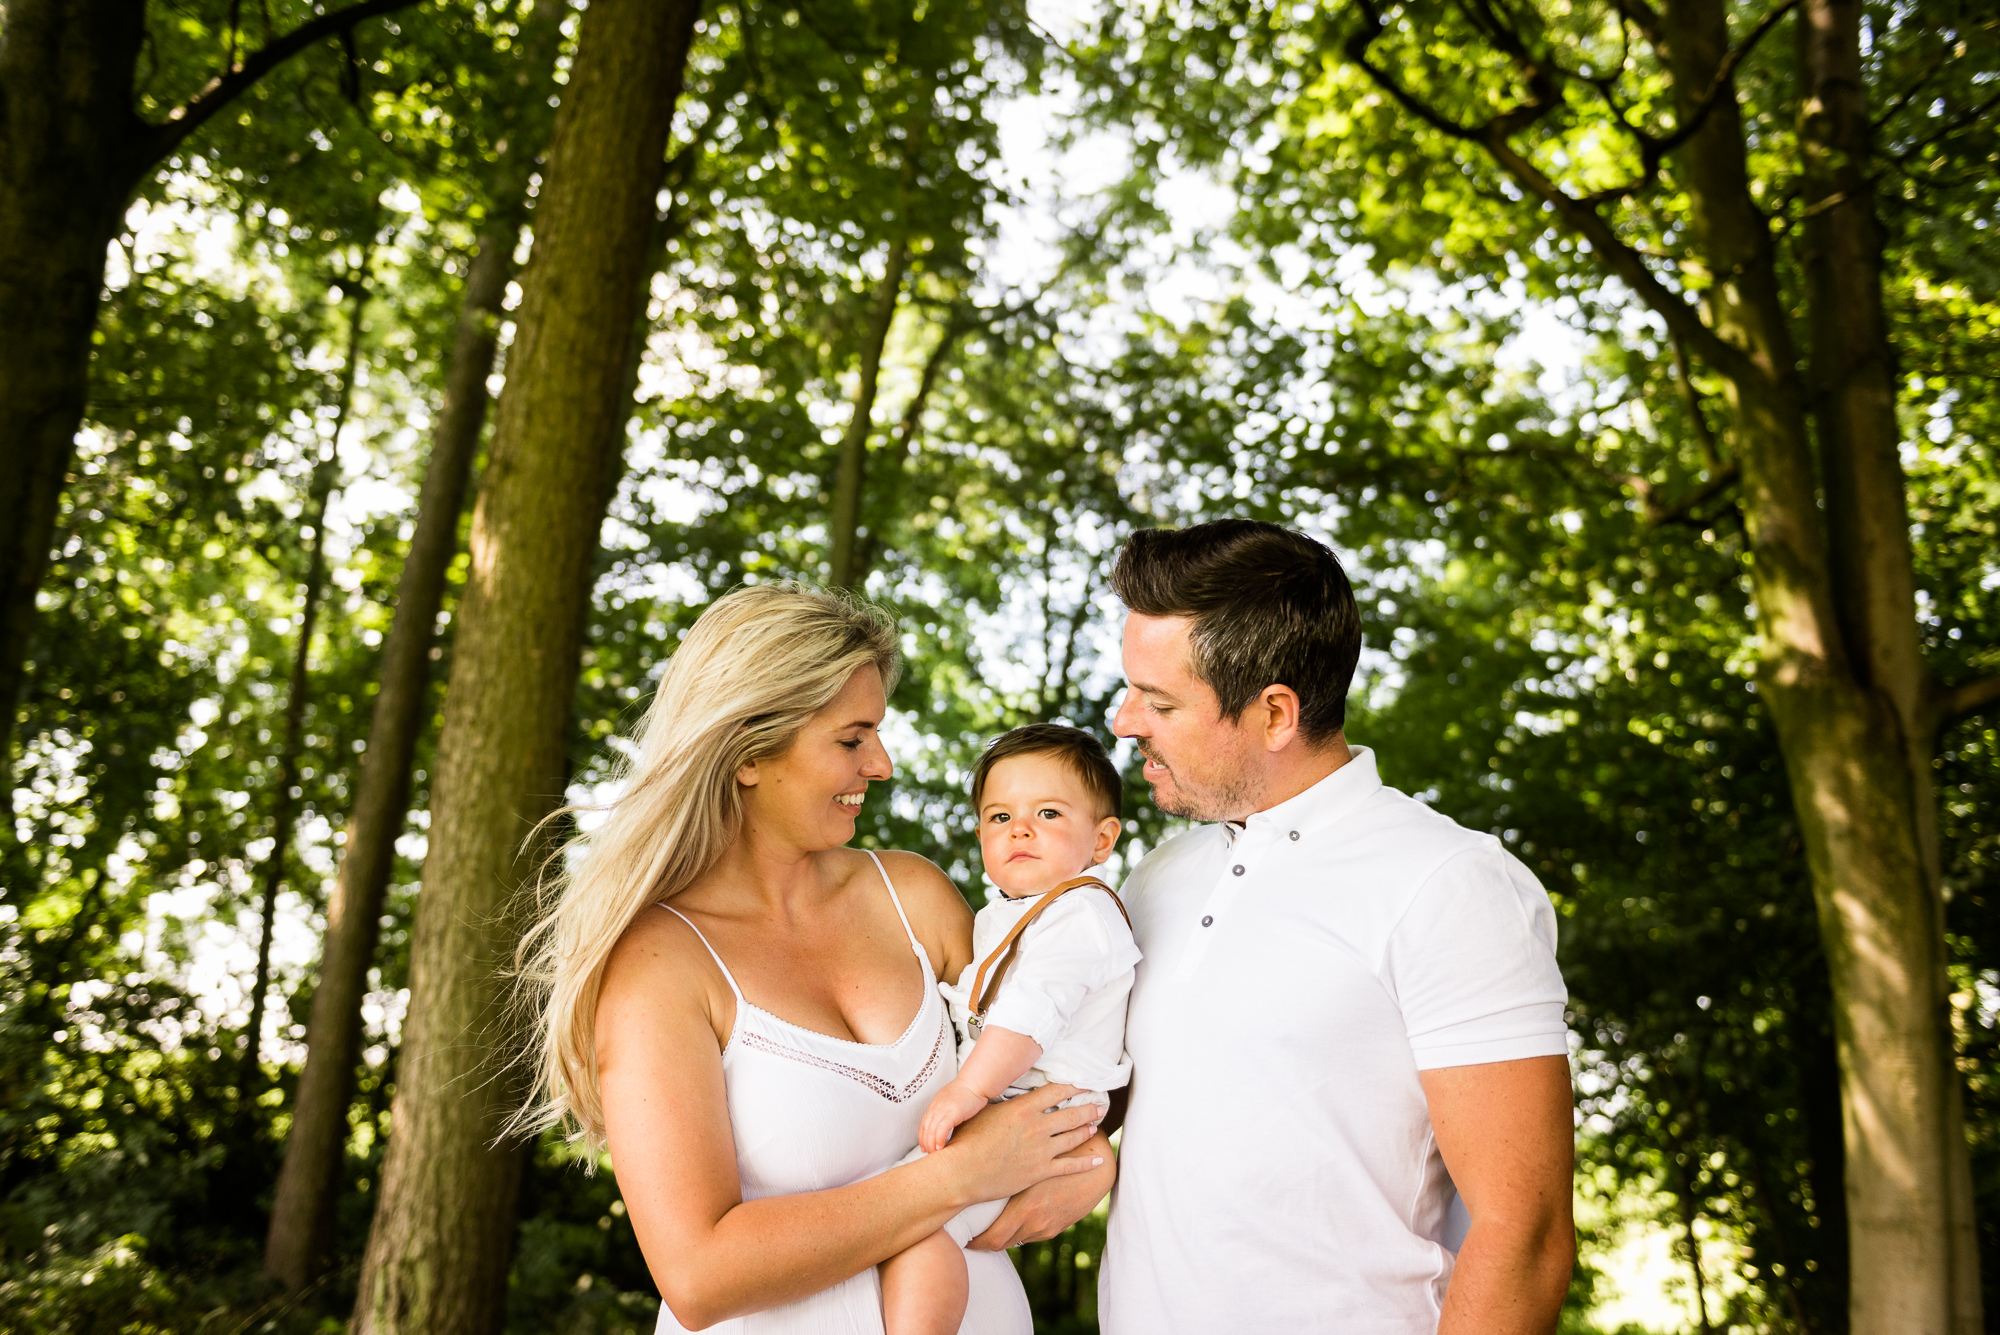 Staffordshire Lifestyle Family Portrait Photography Baby Photographer Outdoors Sunny Summer Field Trees Hay Farm - Jenny Harper Photography-5.jpg